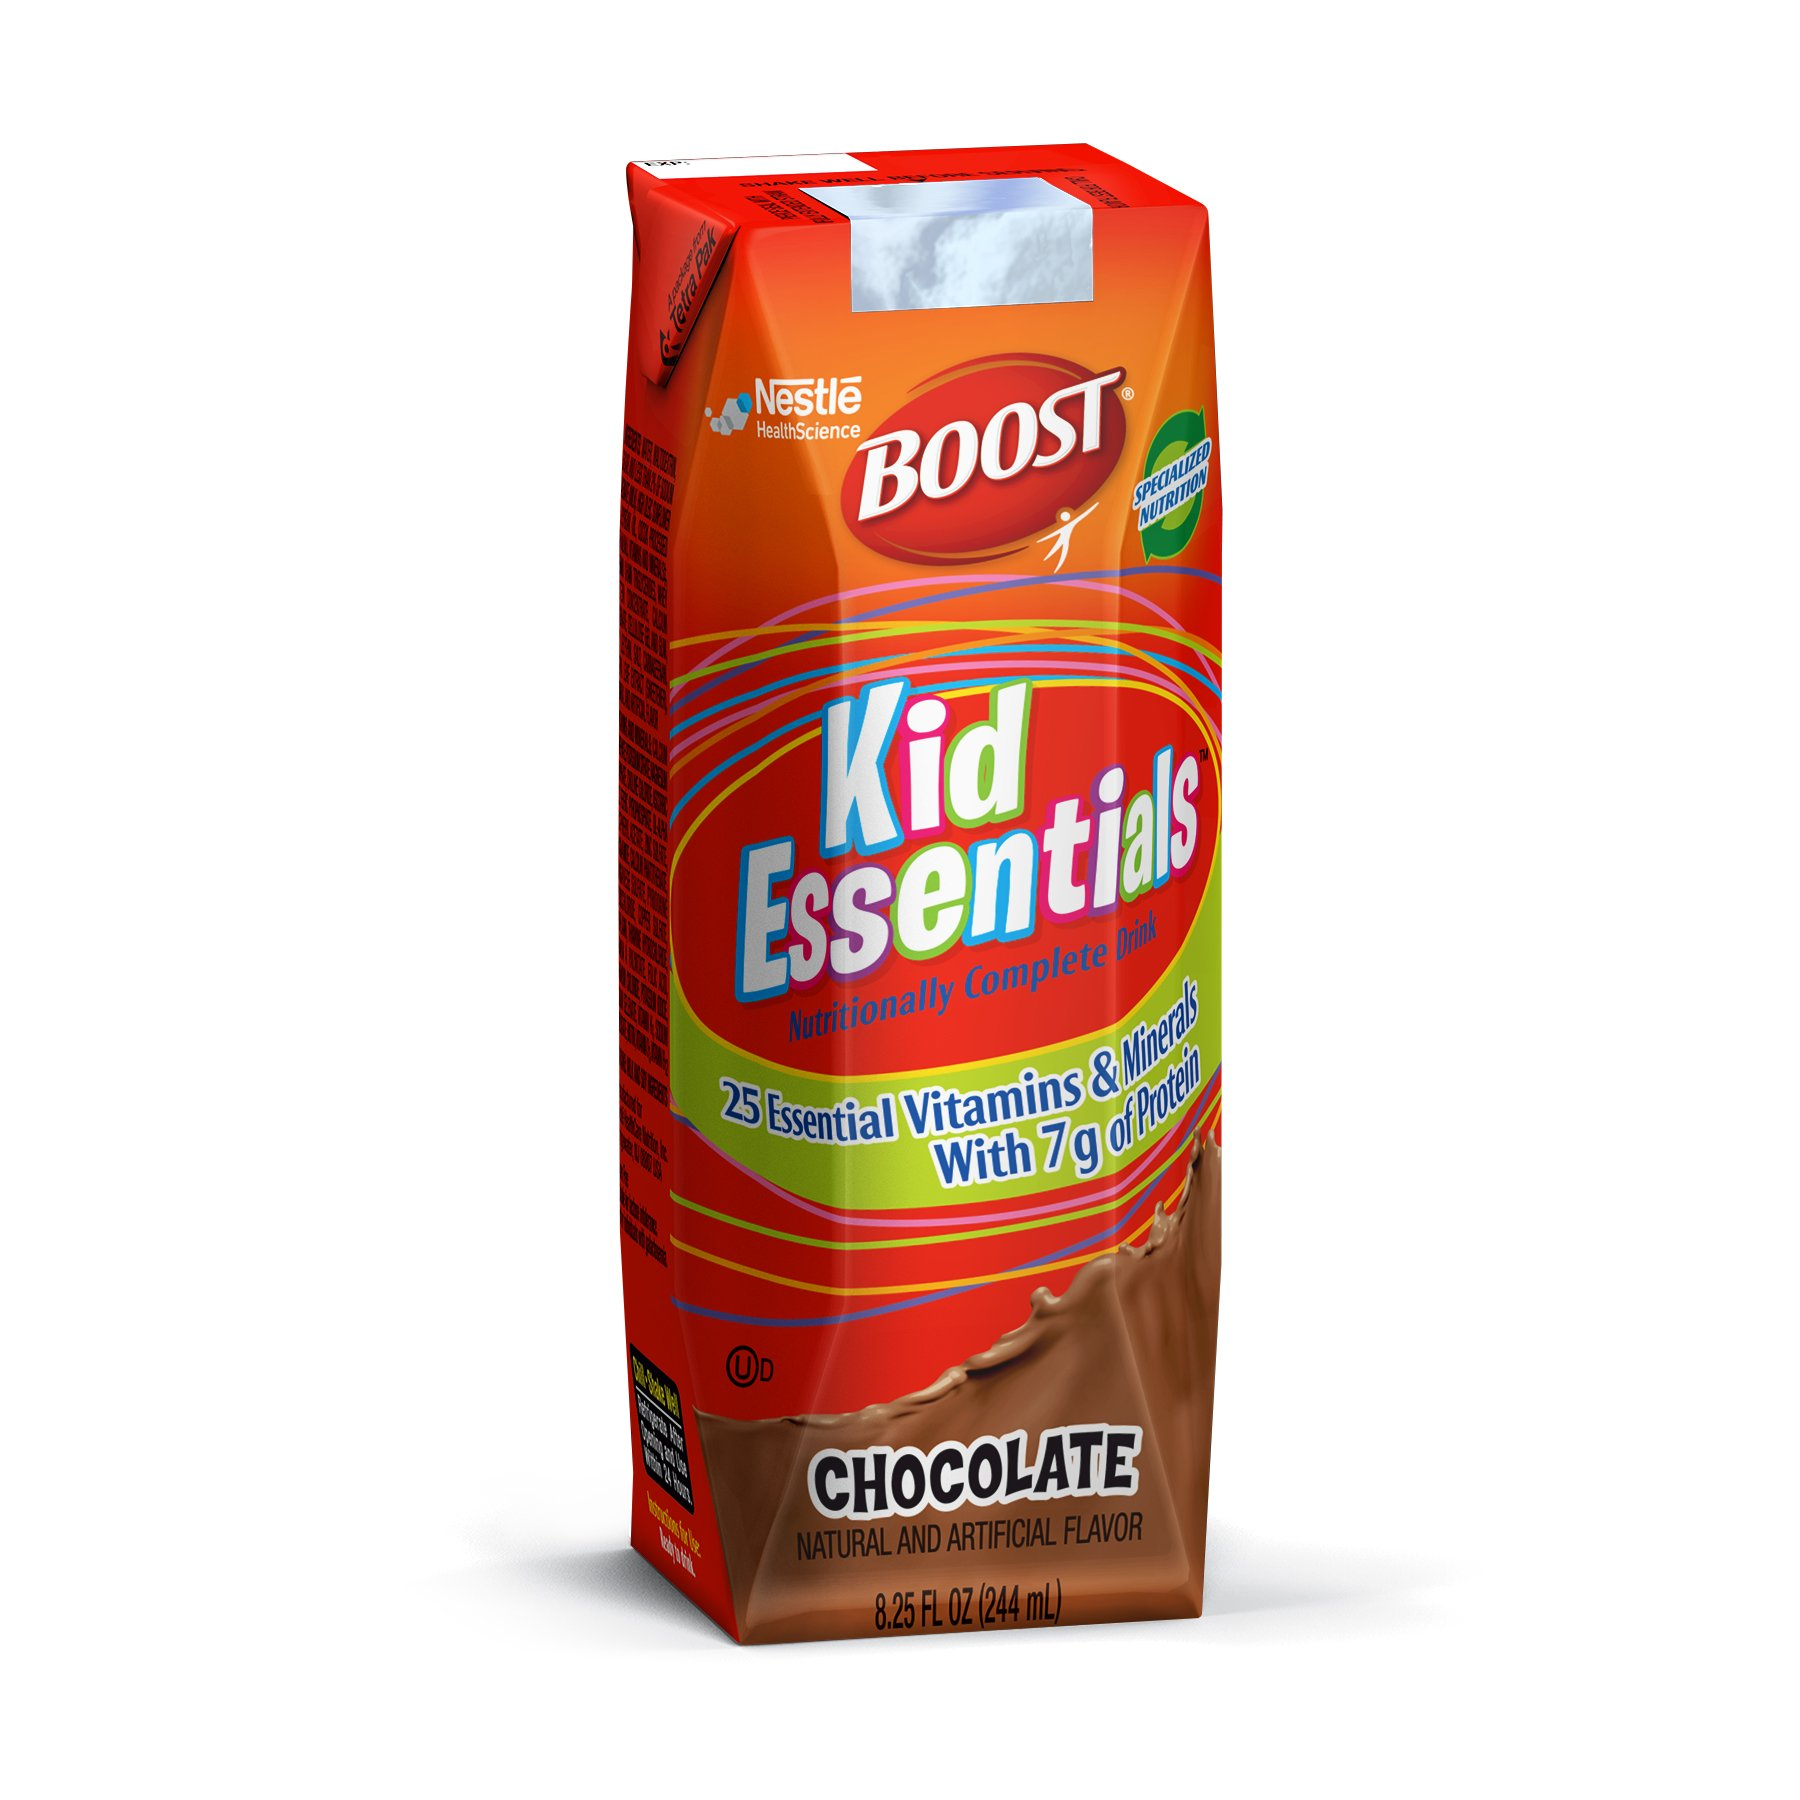 Boost Kid Essentials Nutritionally Complete Drink, Chocolate, 8.25 Fl. Oz box, 16 Pack (Packaging May Vary)